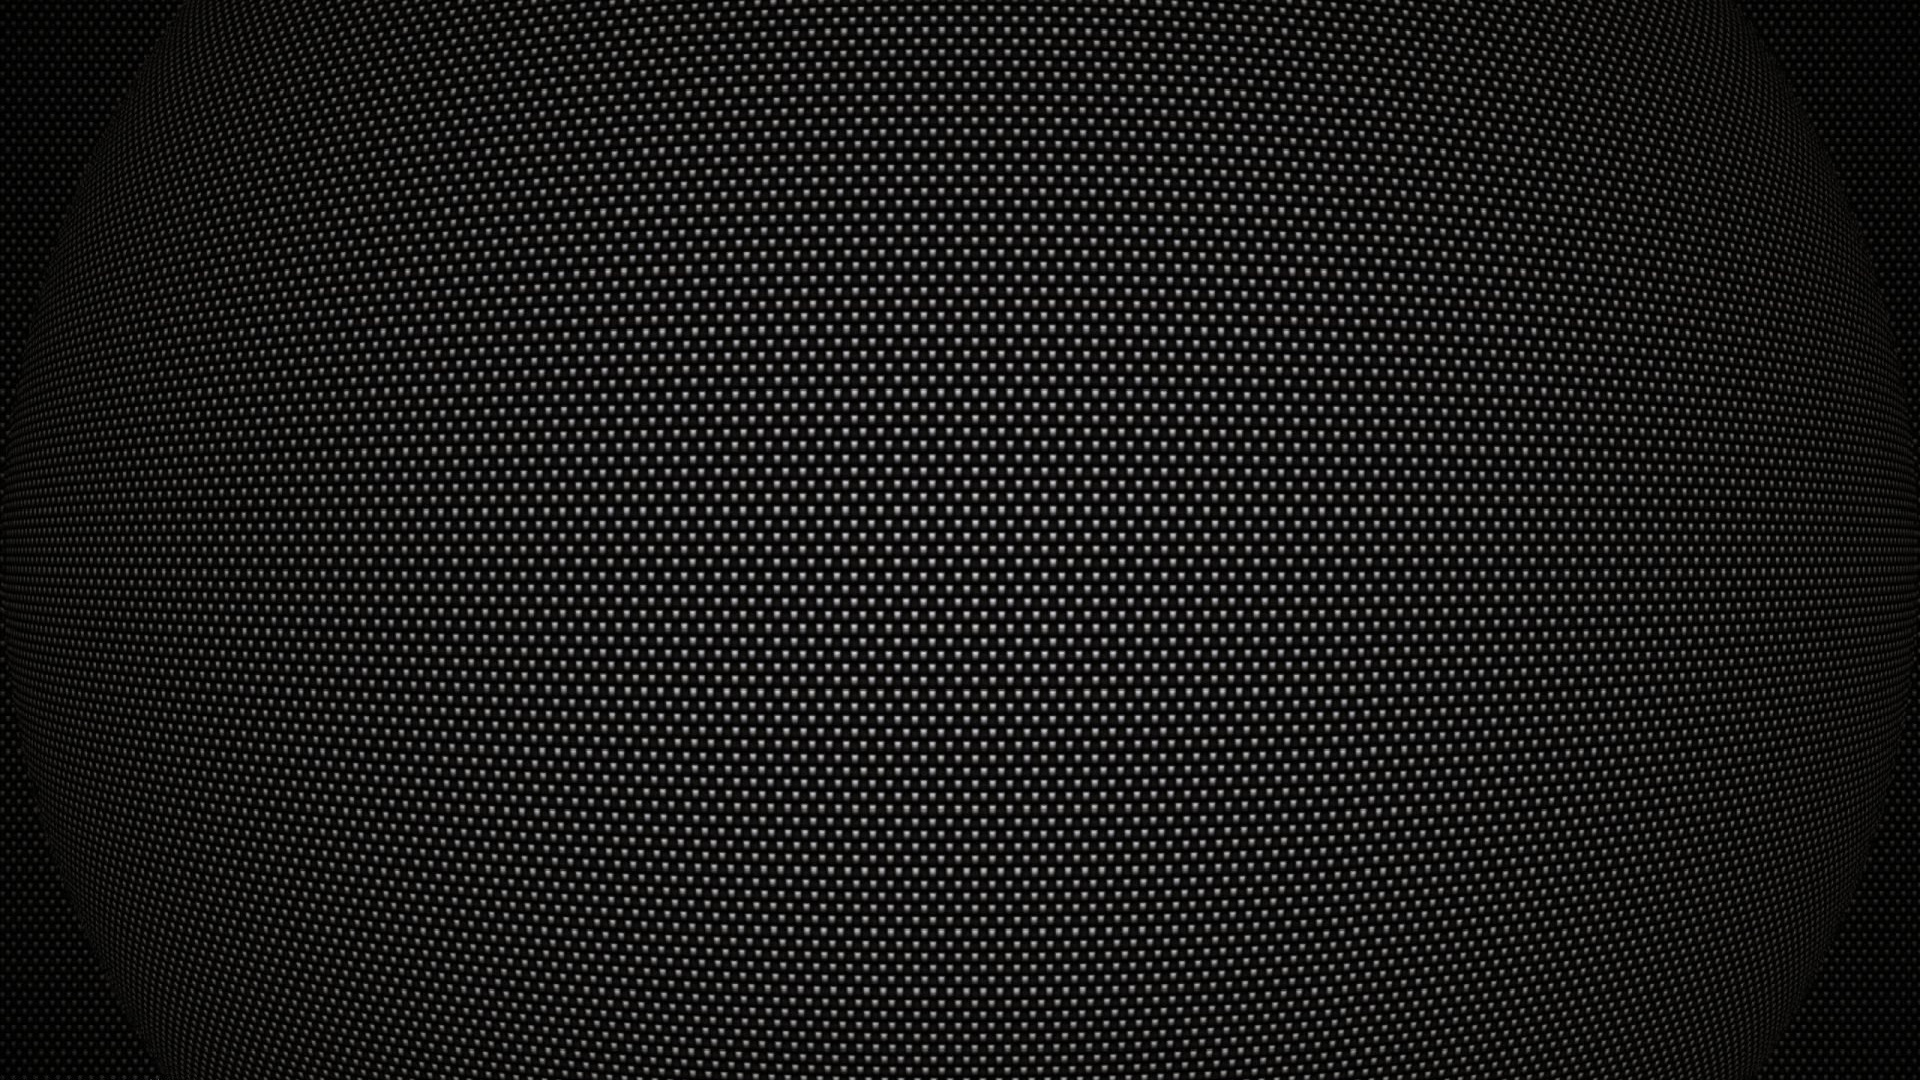 Plain Black Wallpapers Hd Wallpapersafari